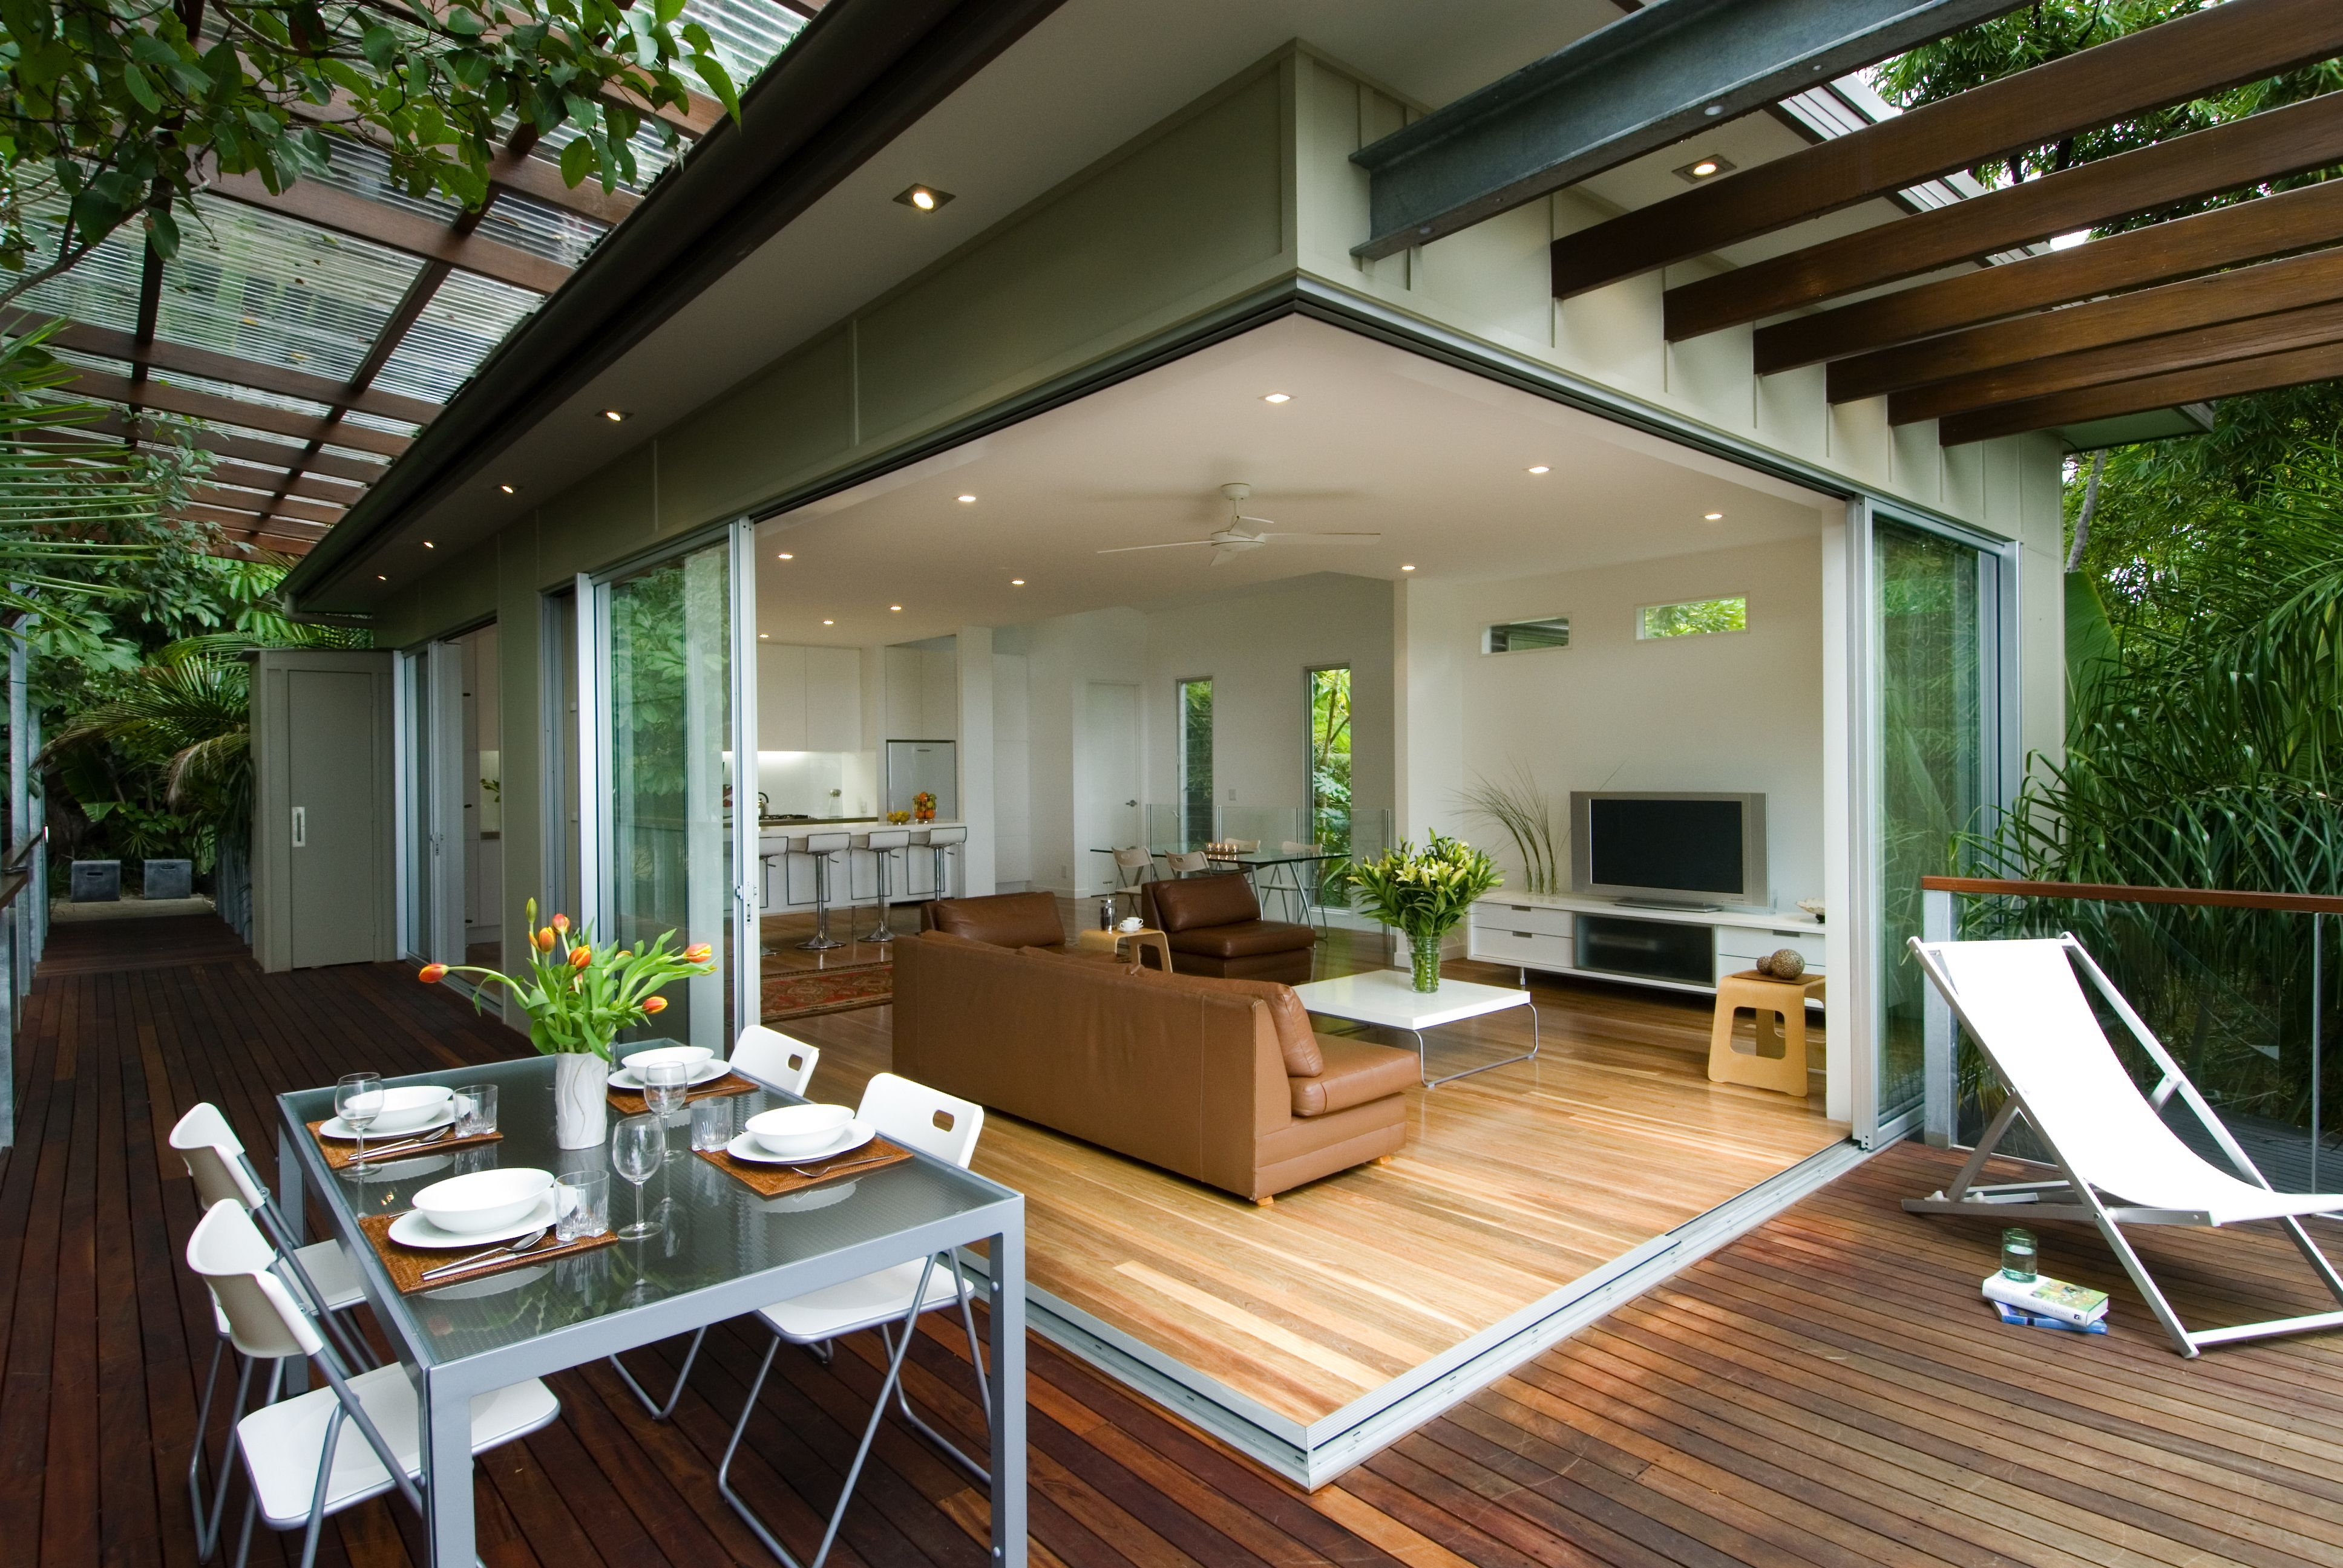 Outdoor Living Design Ideas  Photos Of Outdoor Living Browse